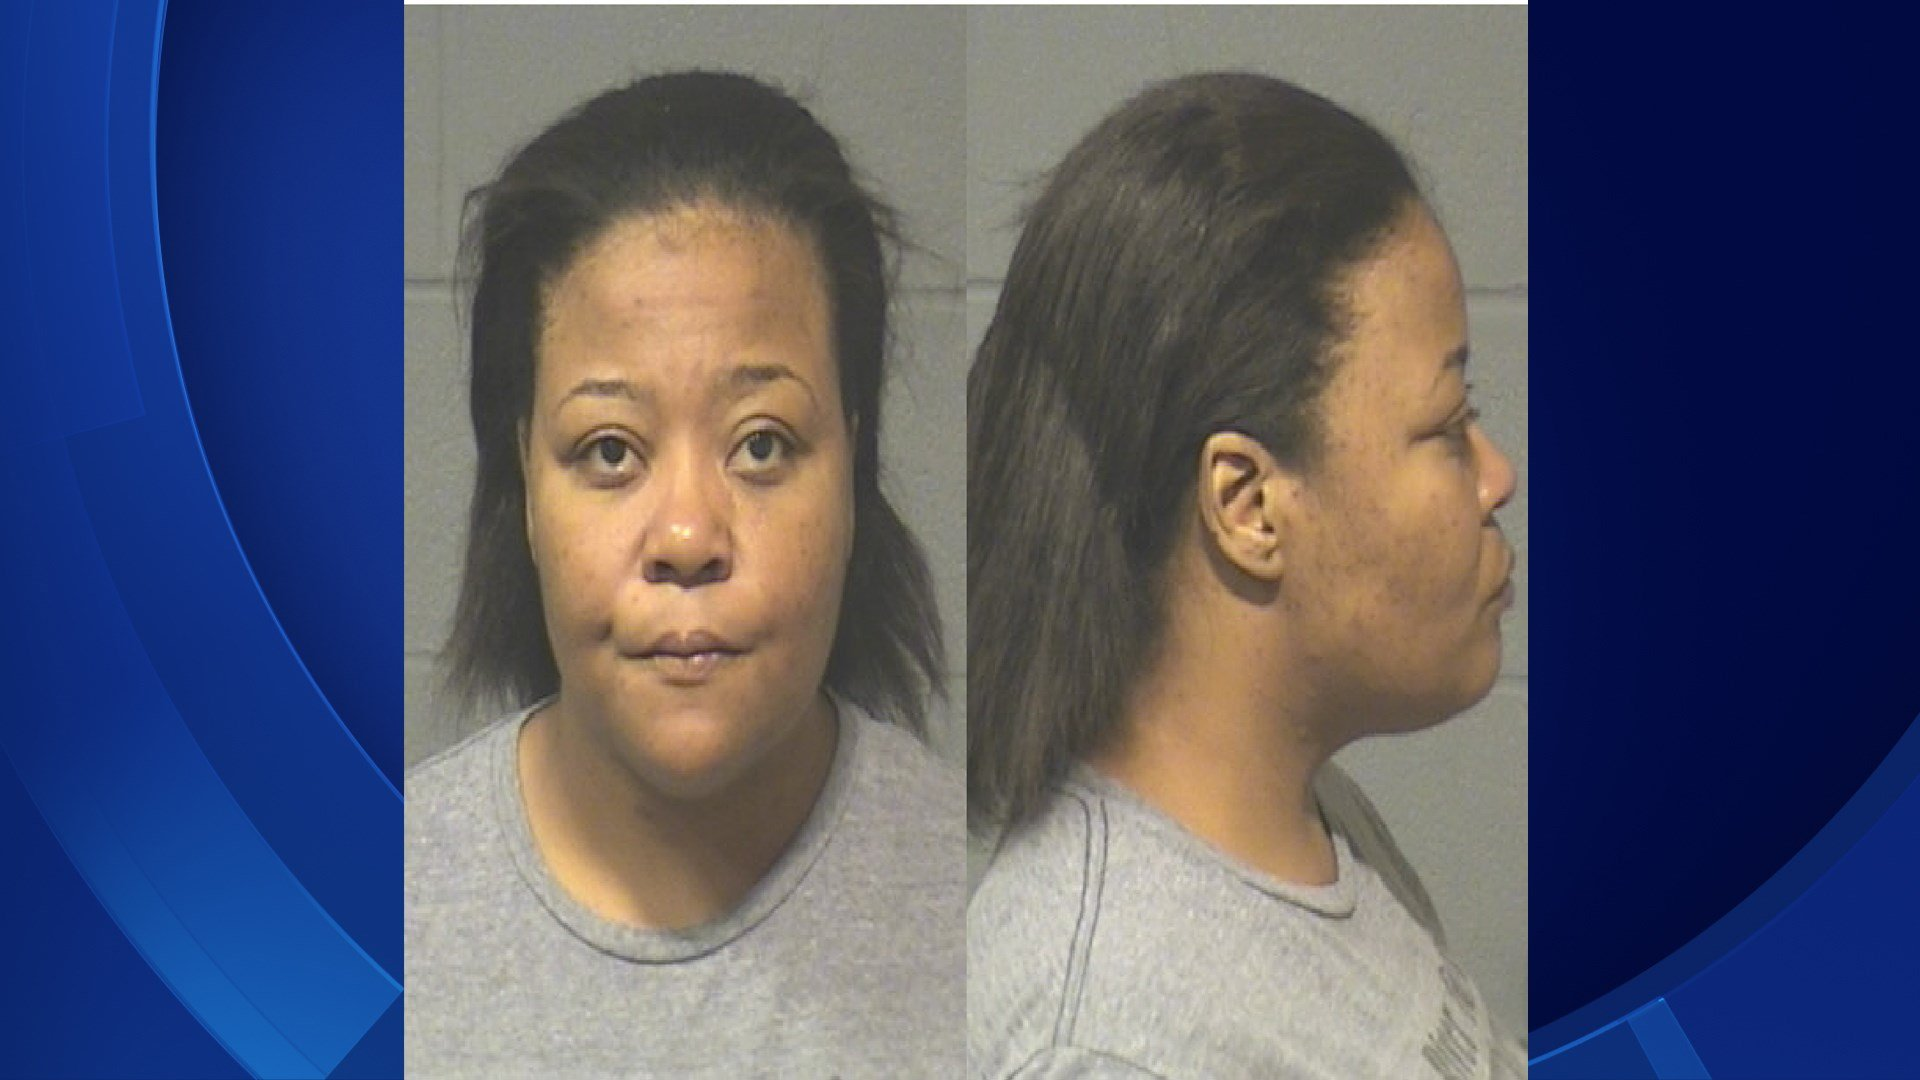 Heather Mclean-Freeman was arrested after allegedly shooting her husband (Harford PD)